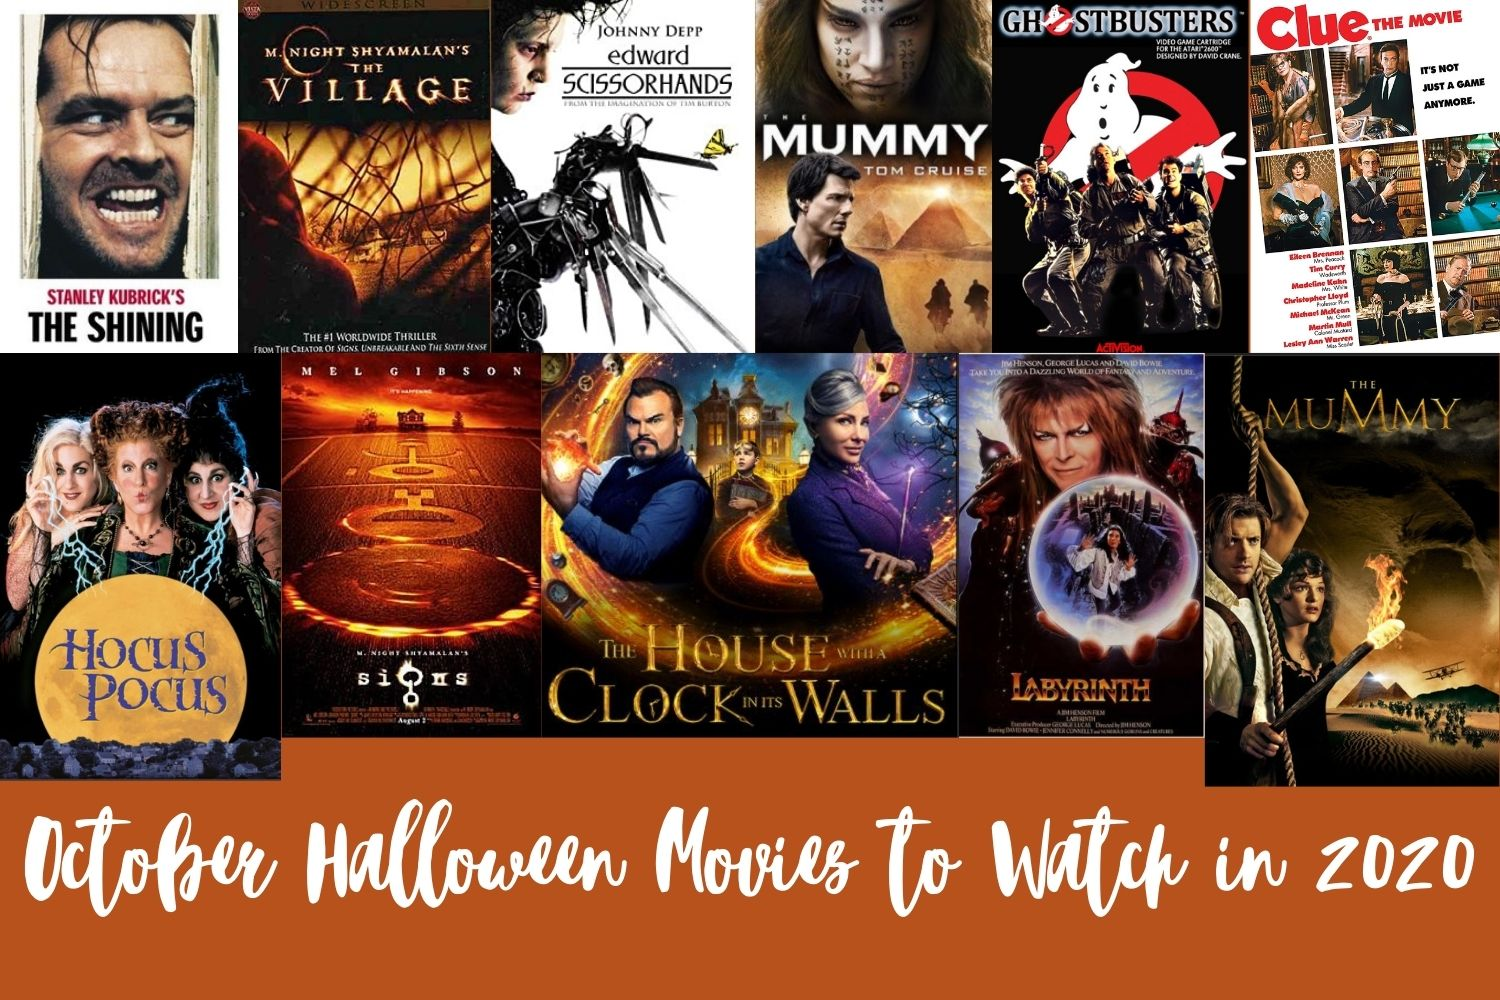 Halloween Movies to Watch in 2020